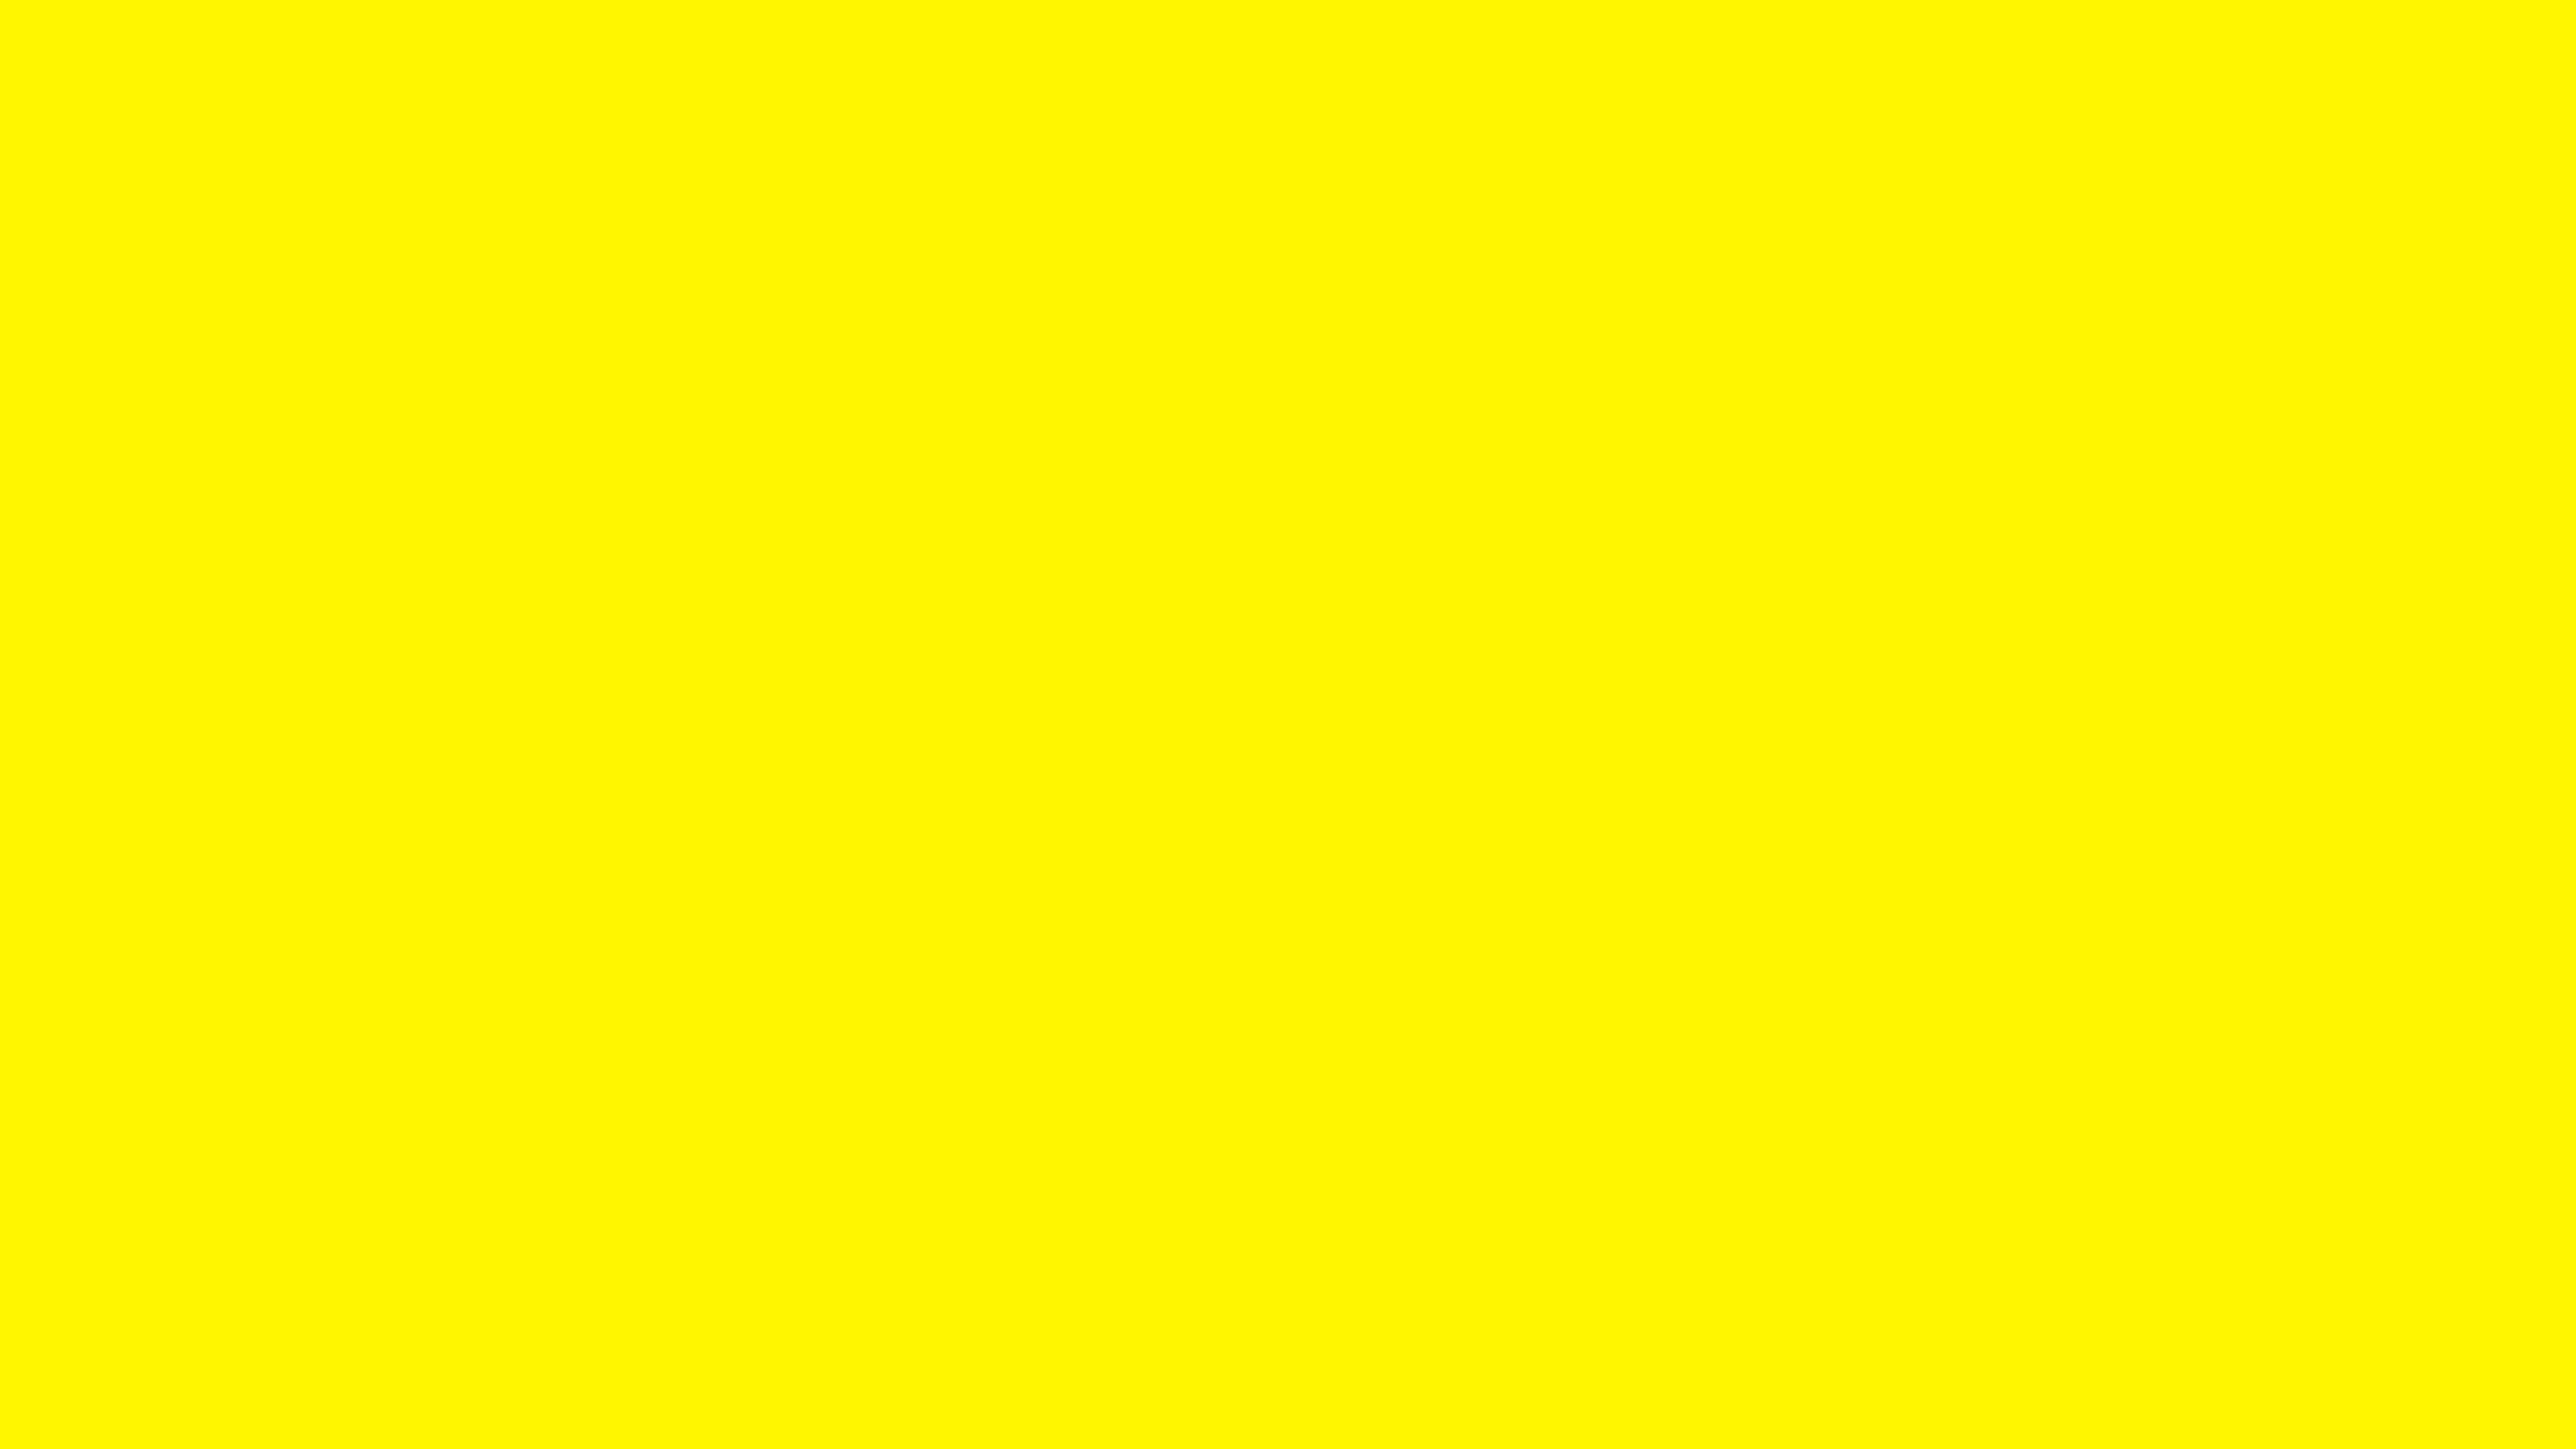 4096x2304 Cadmium Yellow Solid Color Background